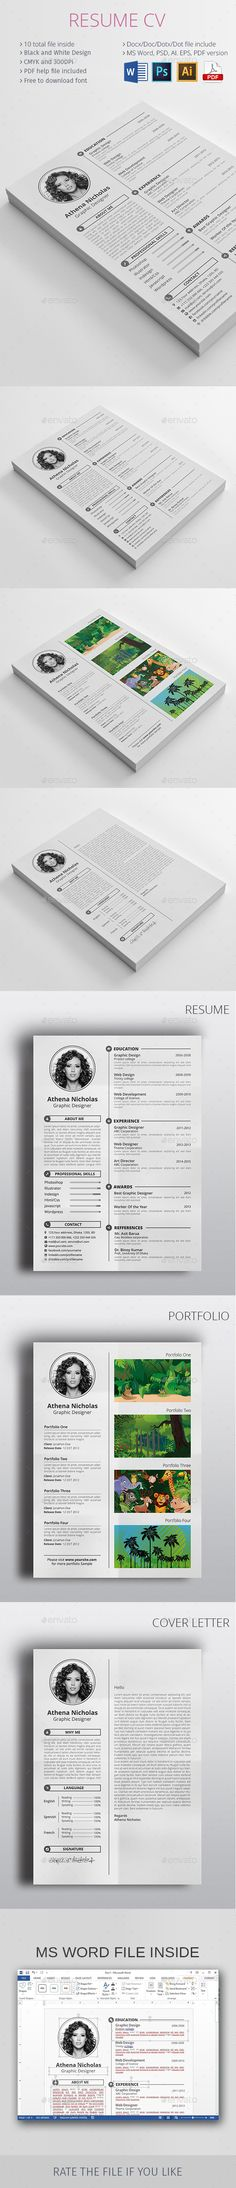 Resume Resume cv, Cv template and Design resume - portfolio word template